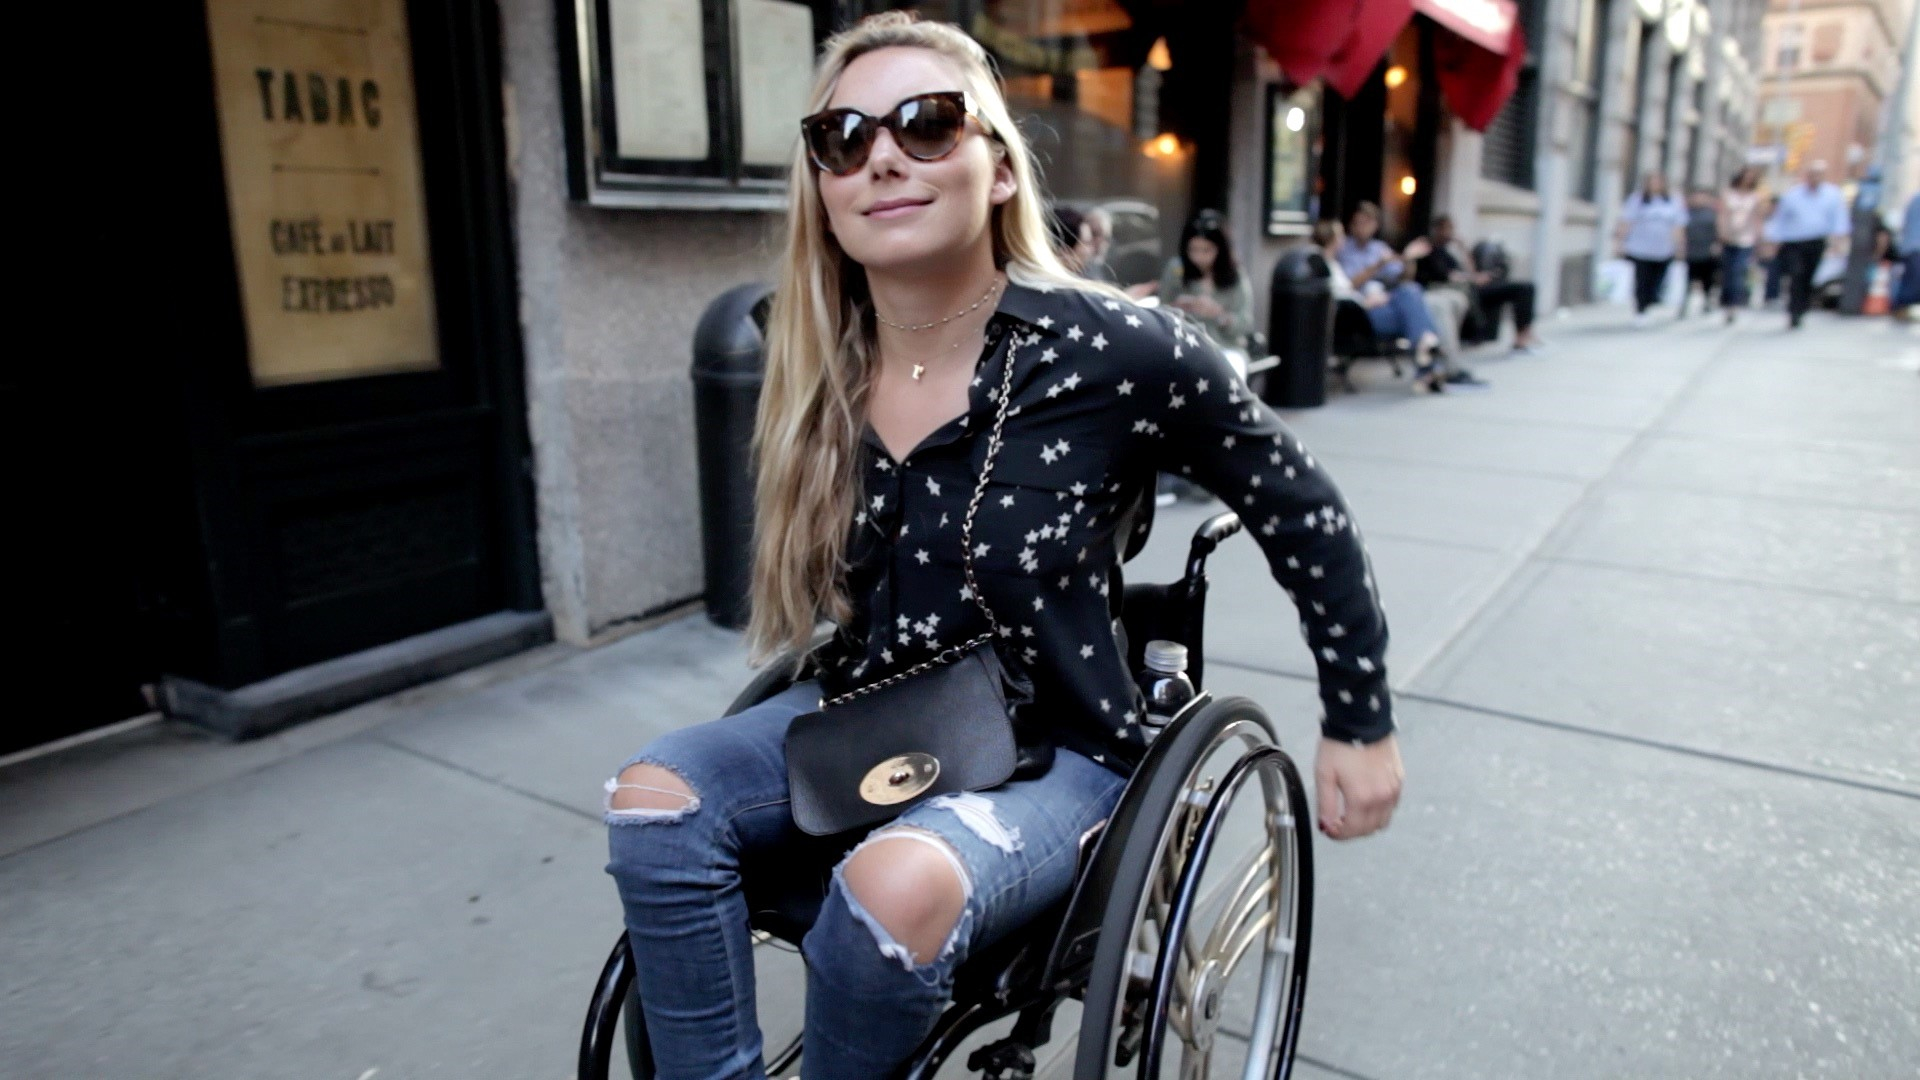 5 Things We Can Learn From Persons With Disabilities